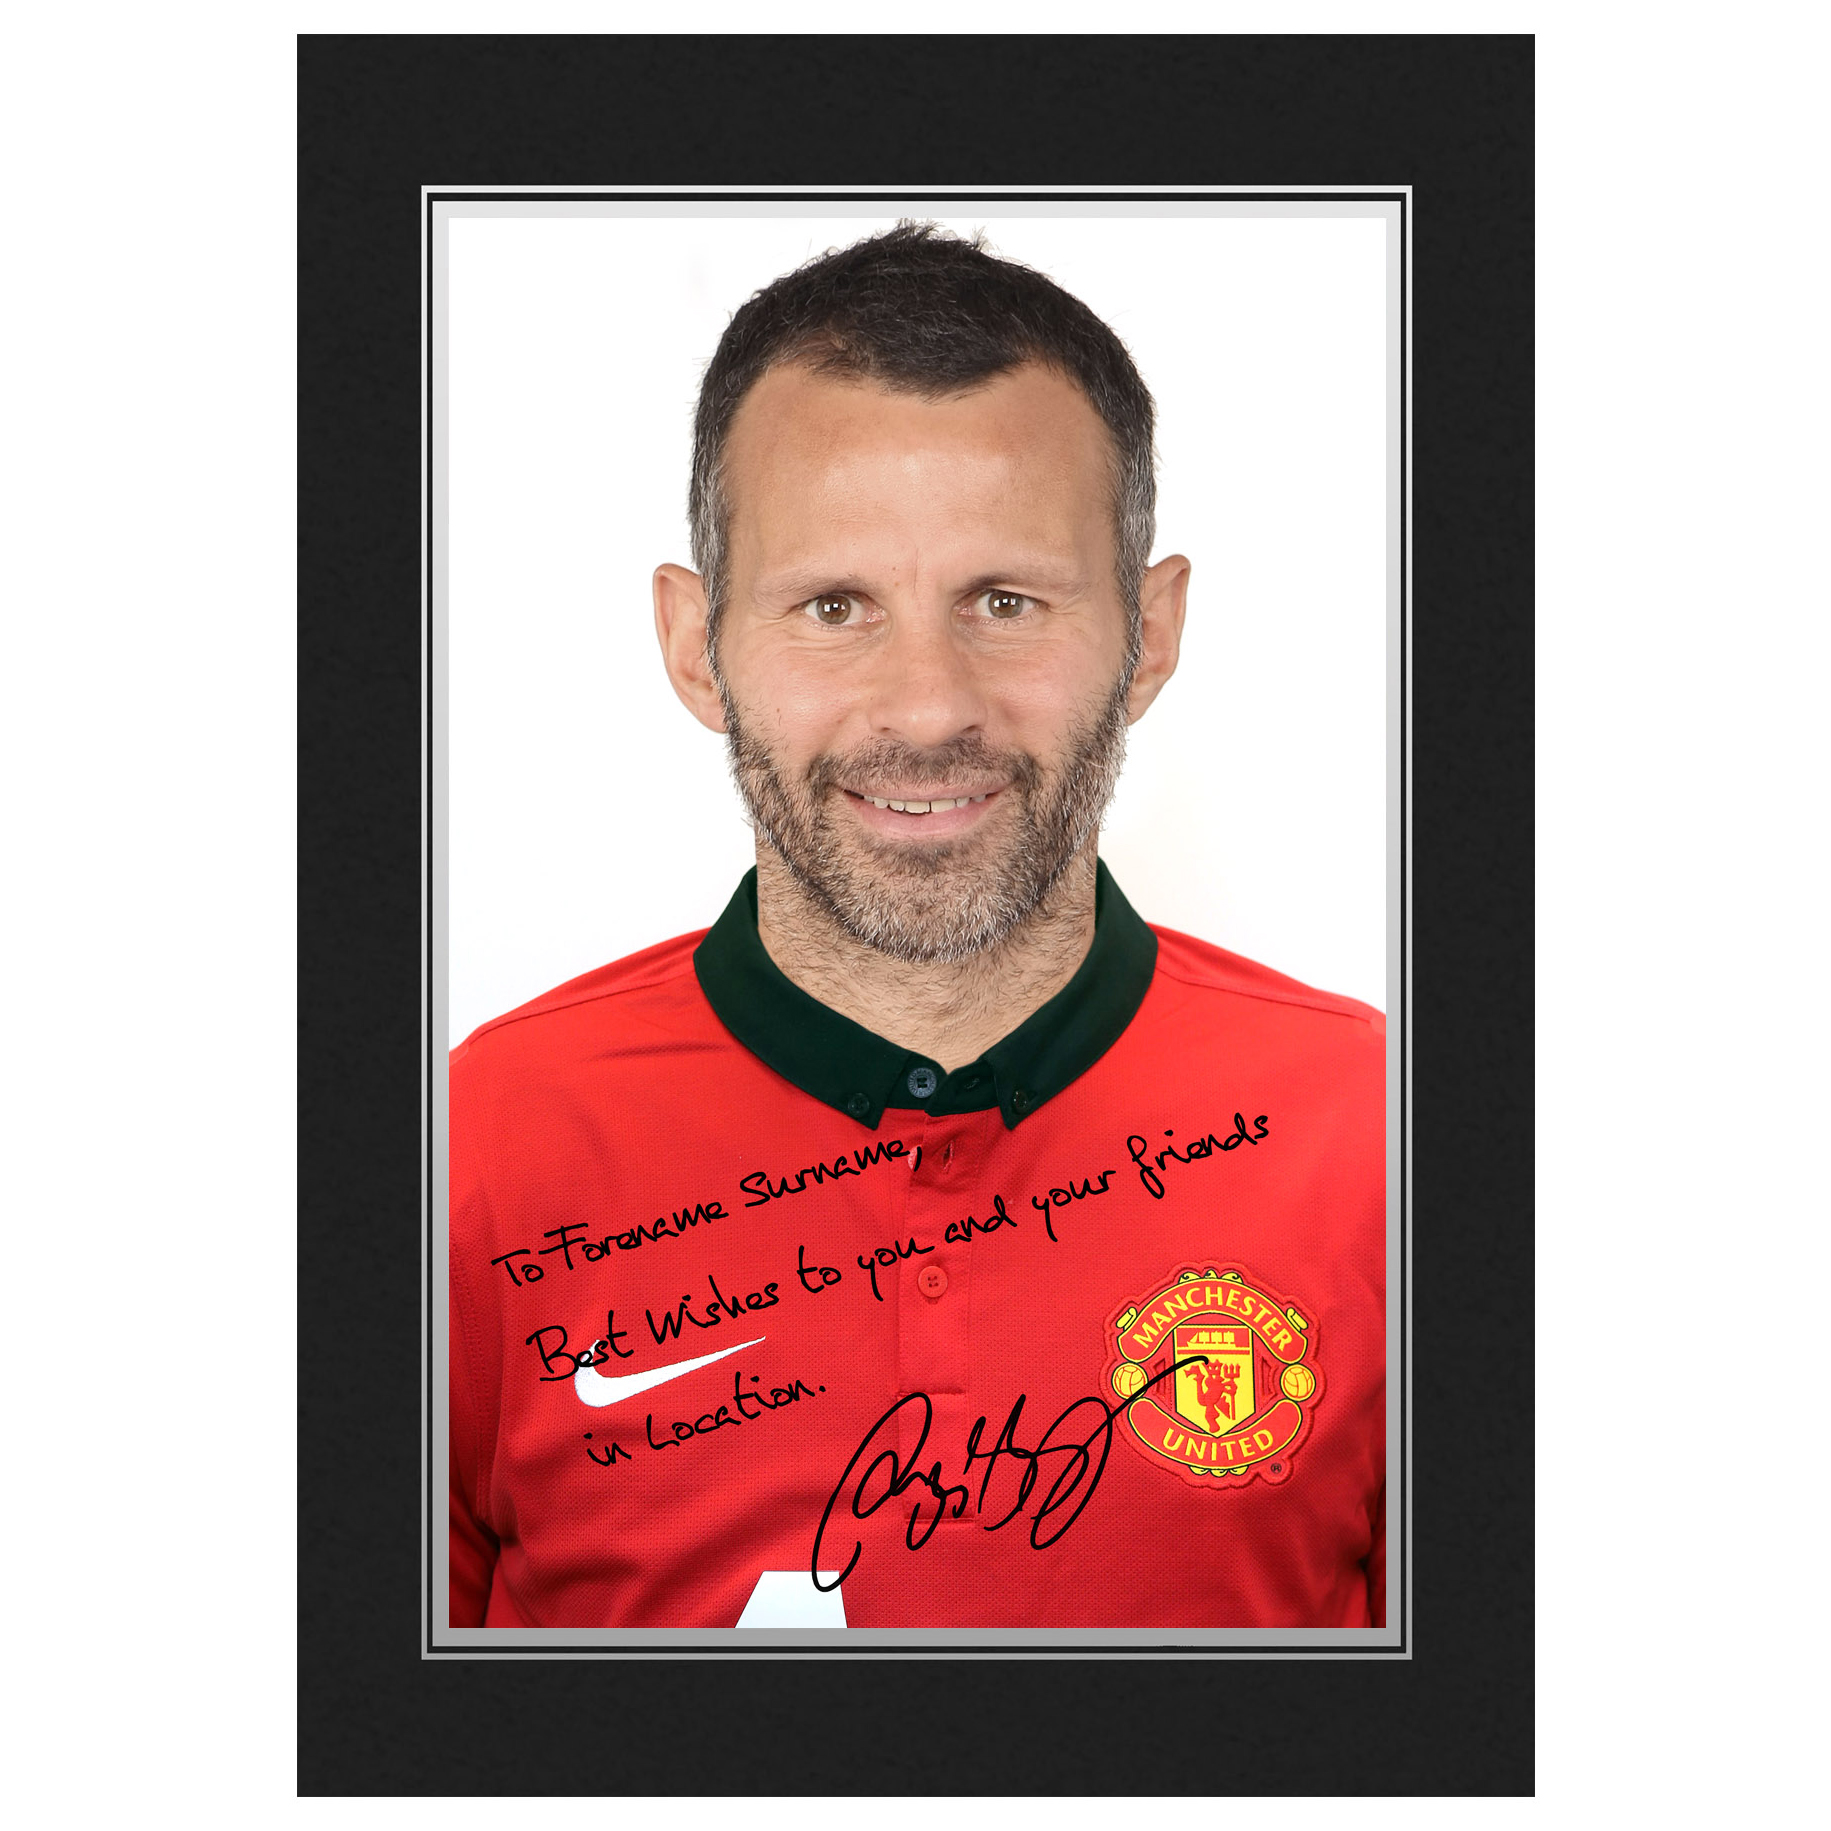 Manchester United Personalised Signature Photo In Presentation Folder - Giggs